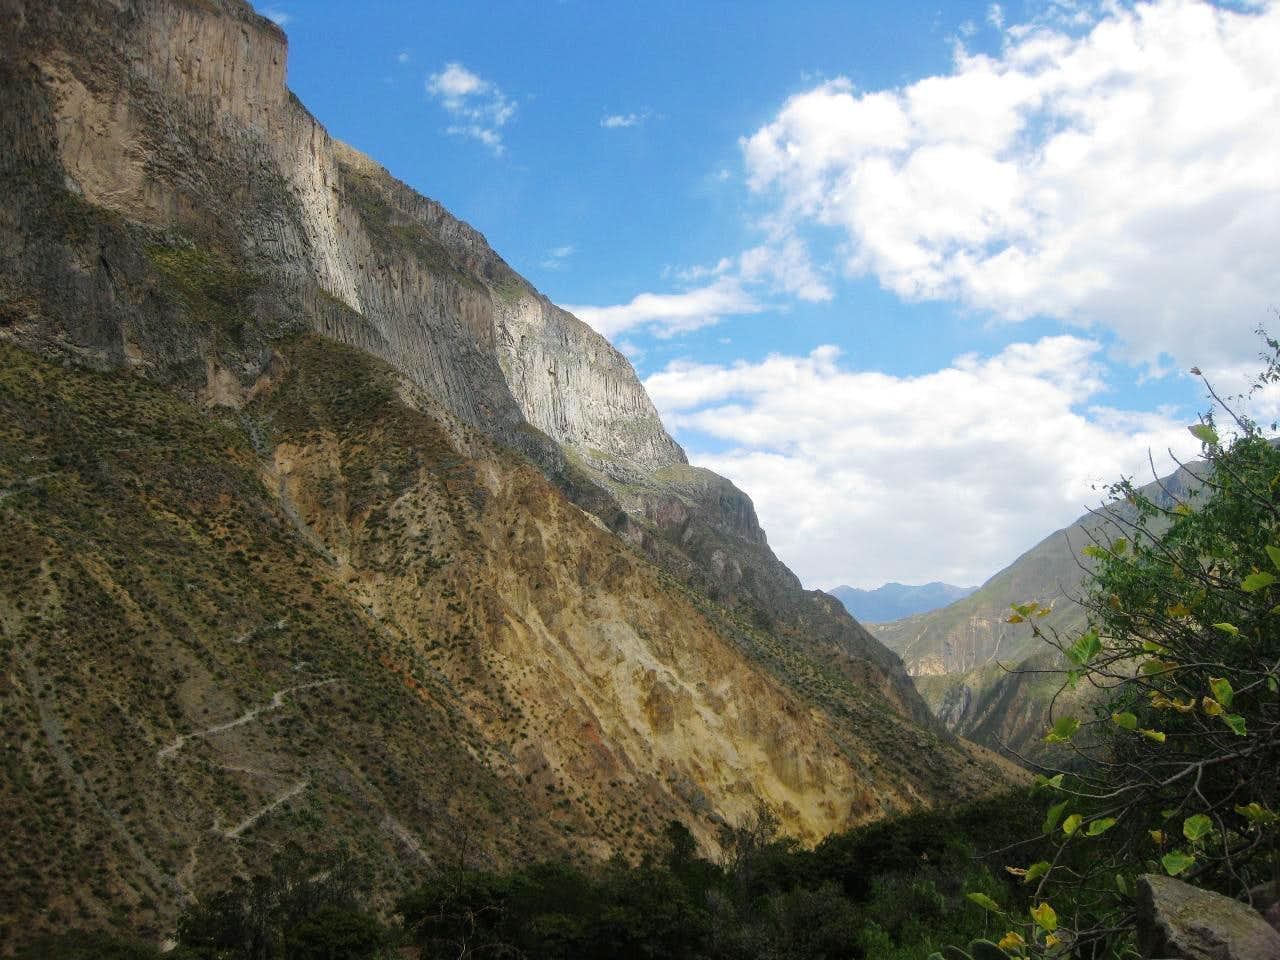 Hiking in Colca Canyon